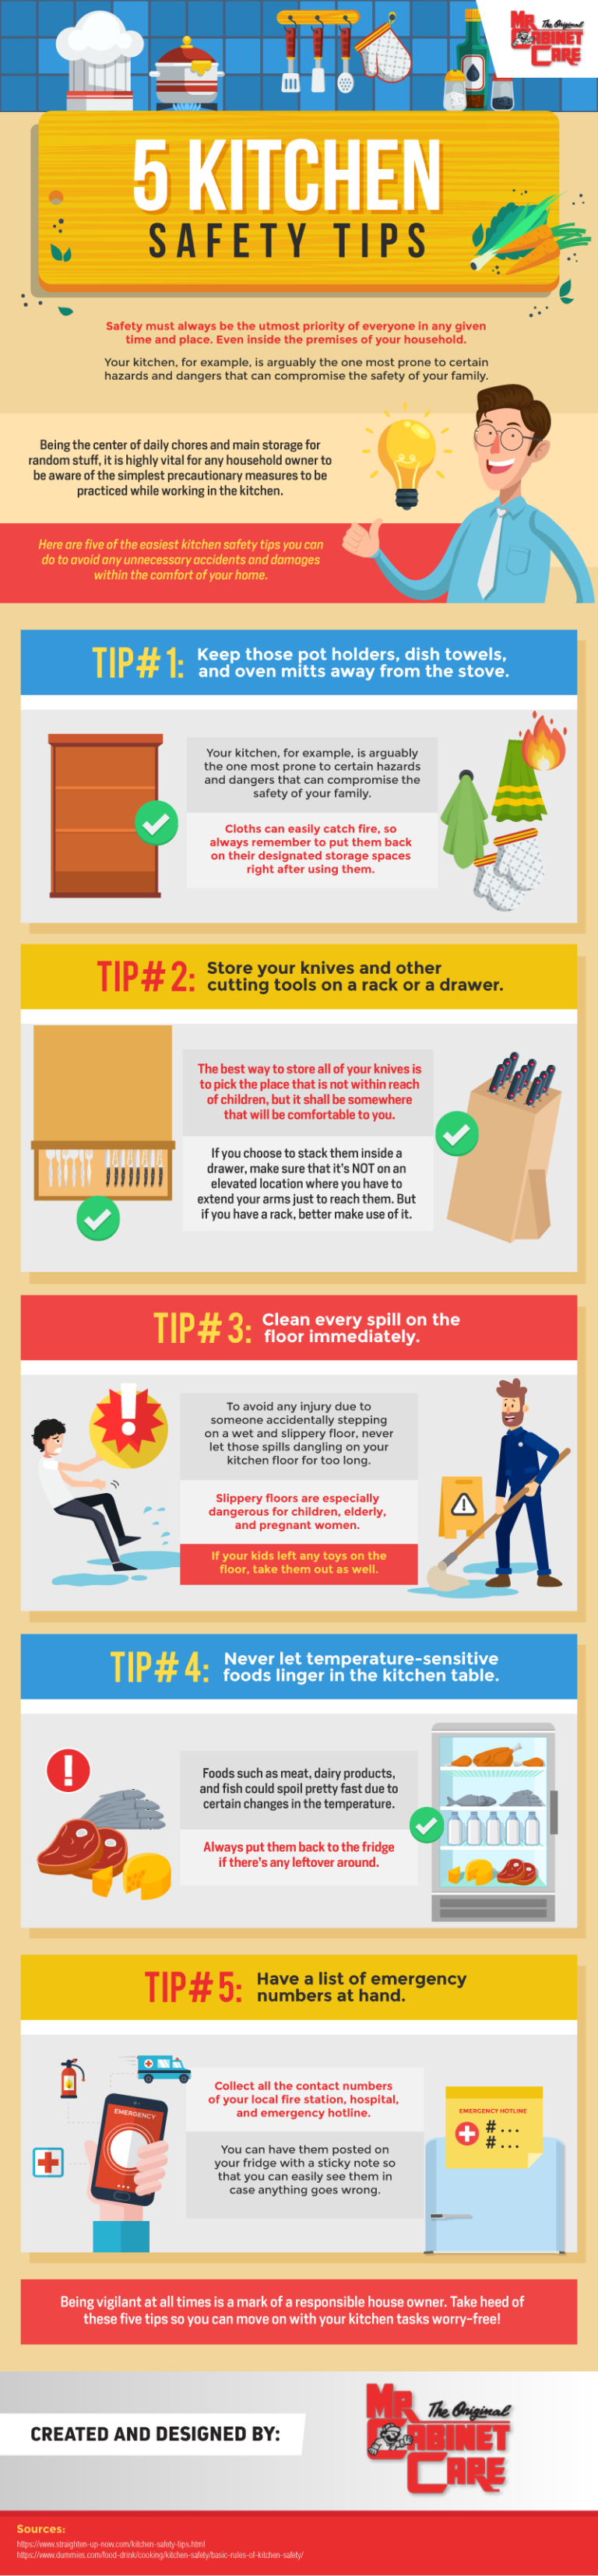 5 Kitchen Safety Tips #infographic